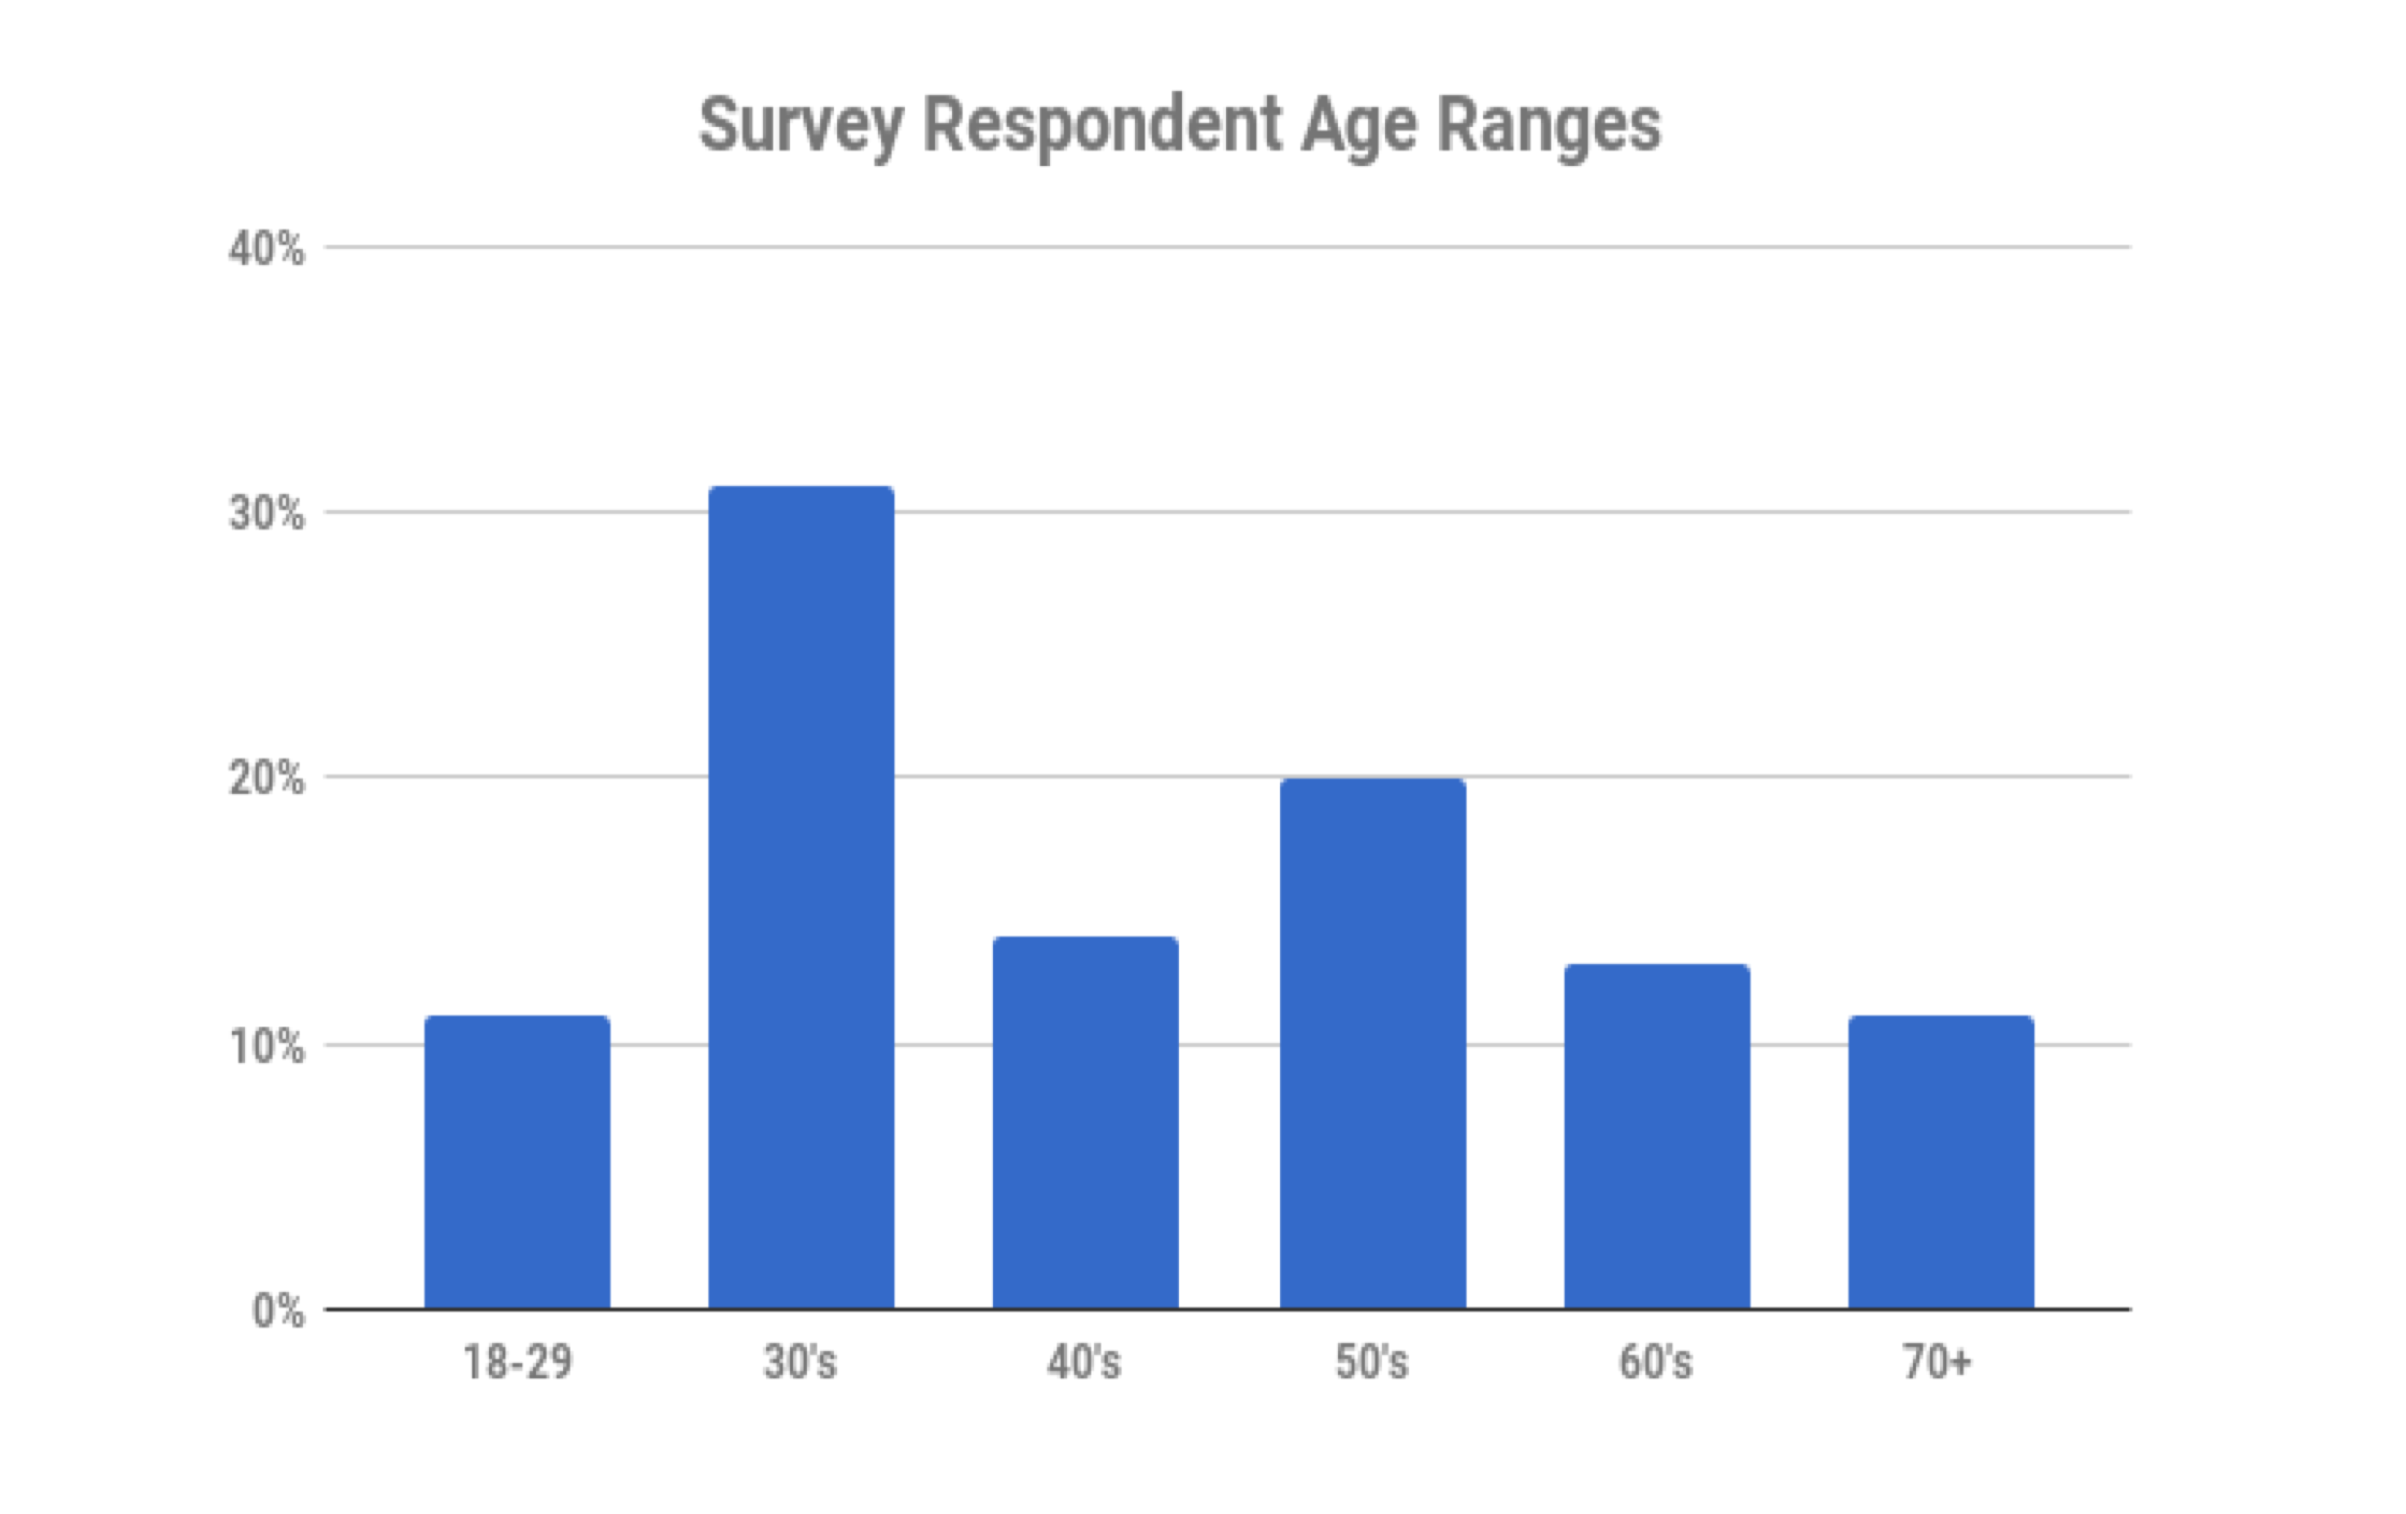 This chart shows the ages of those who responded to the survey.